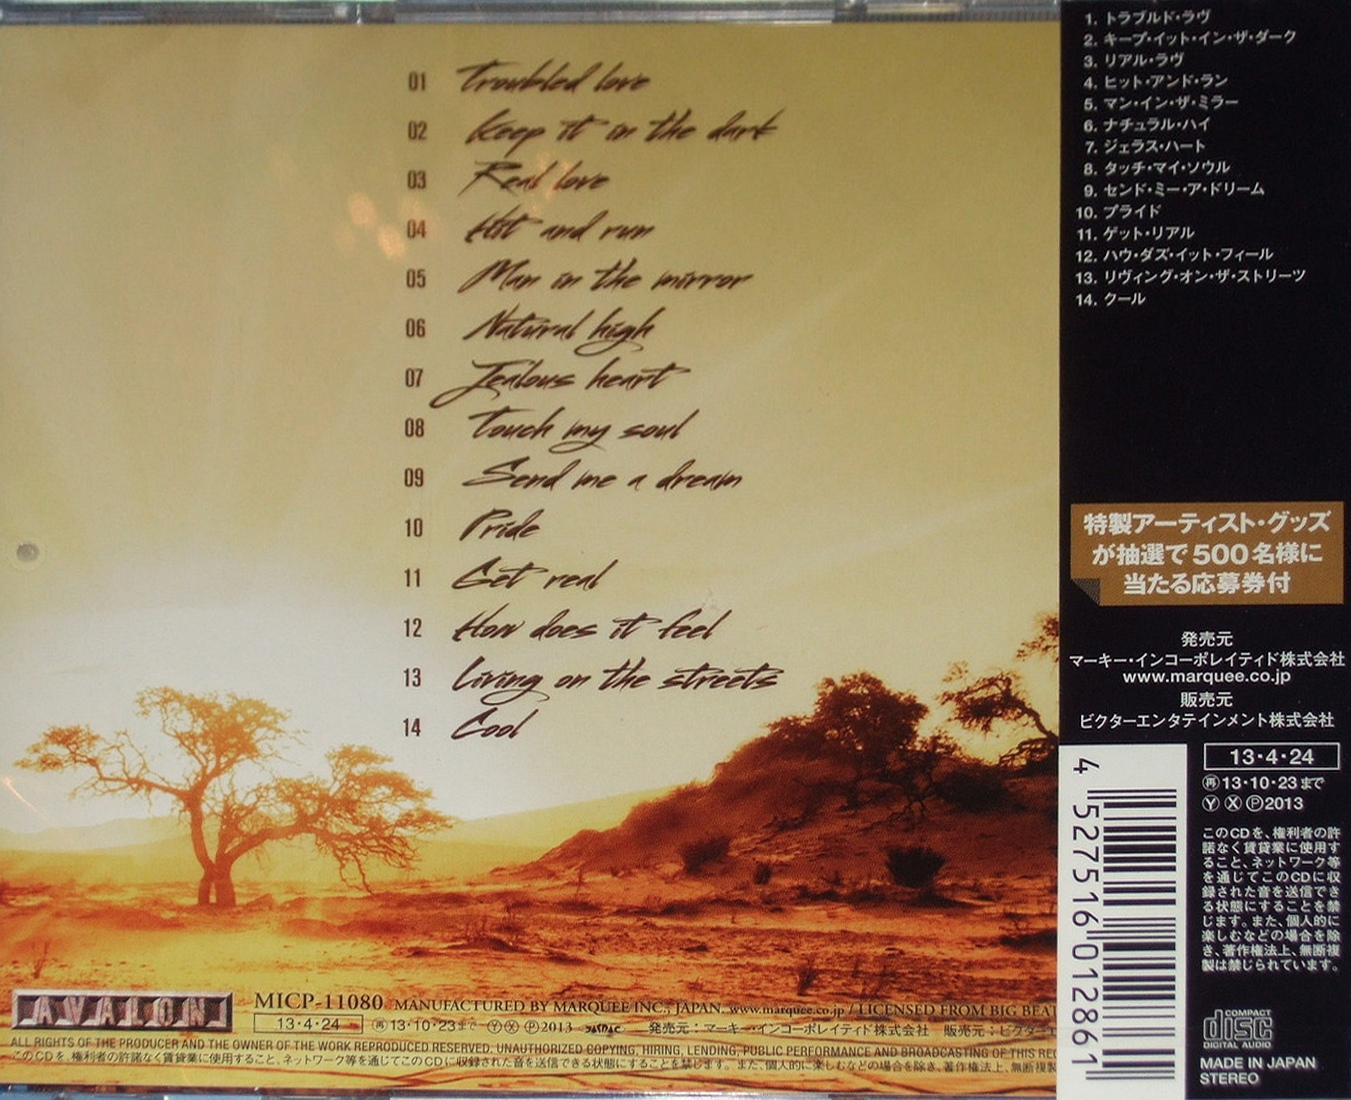 FAIR WARNING - Sundancer [Japanese Edition] (2013) back cover